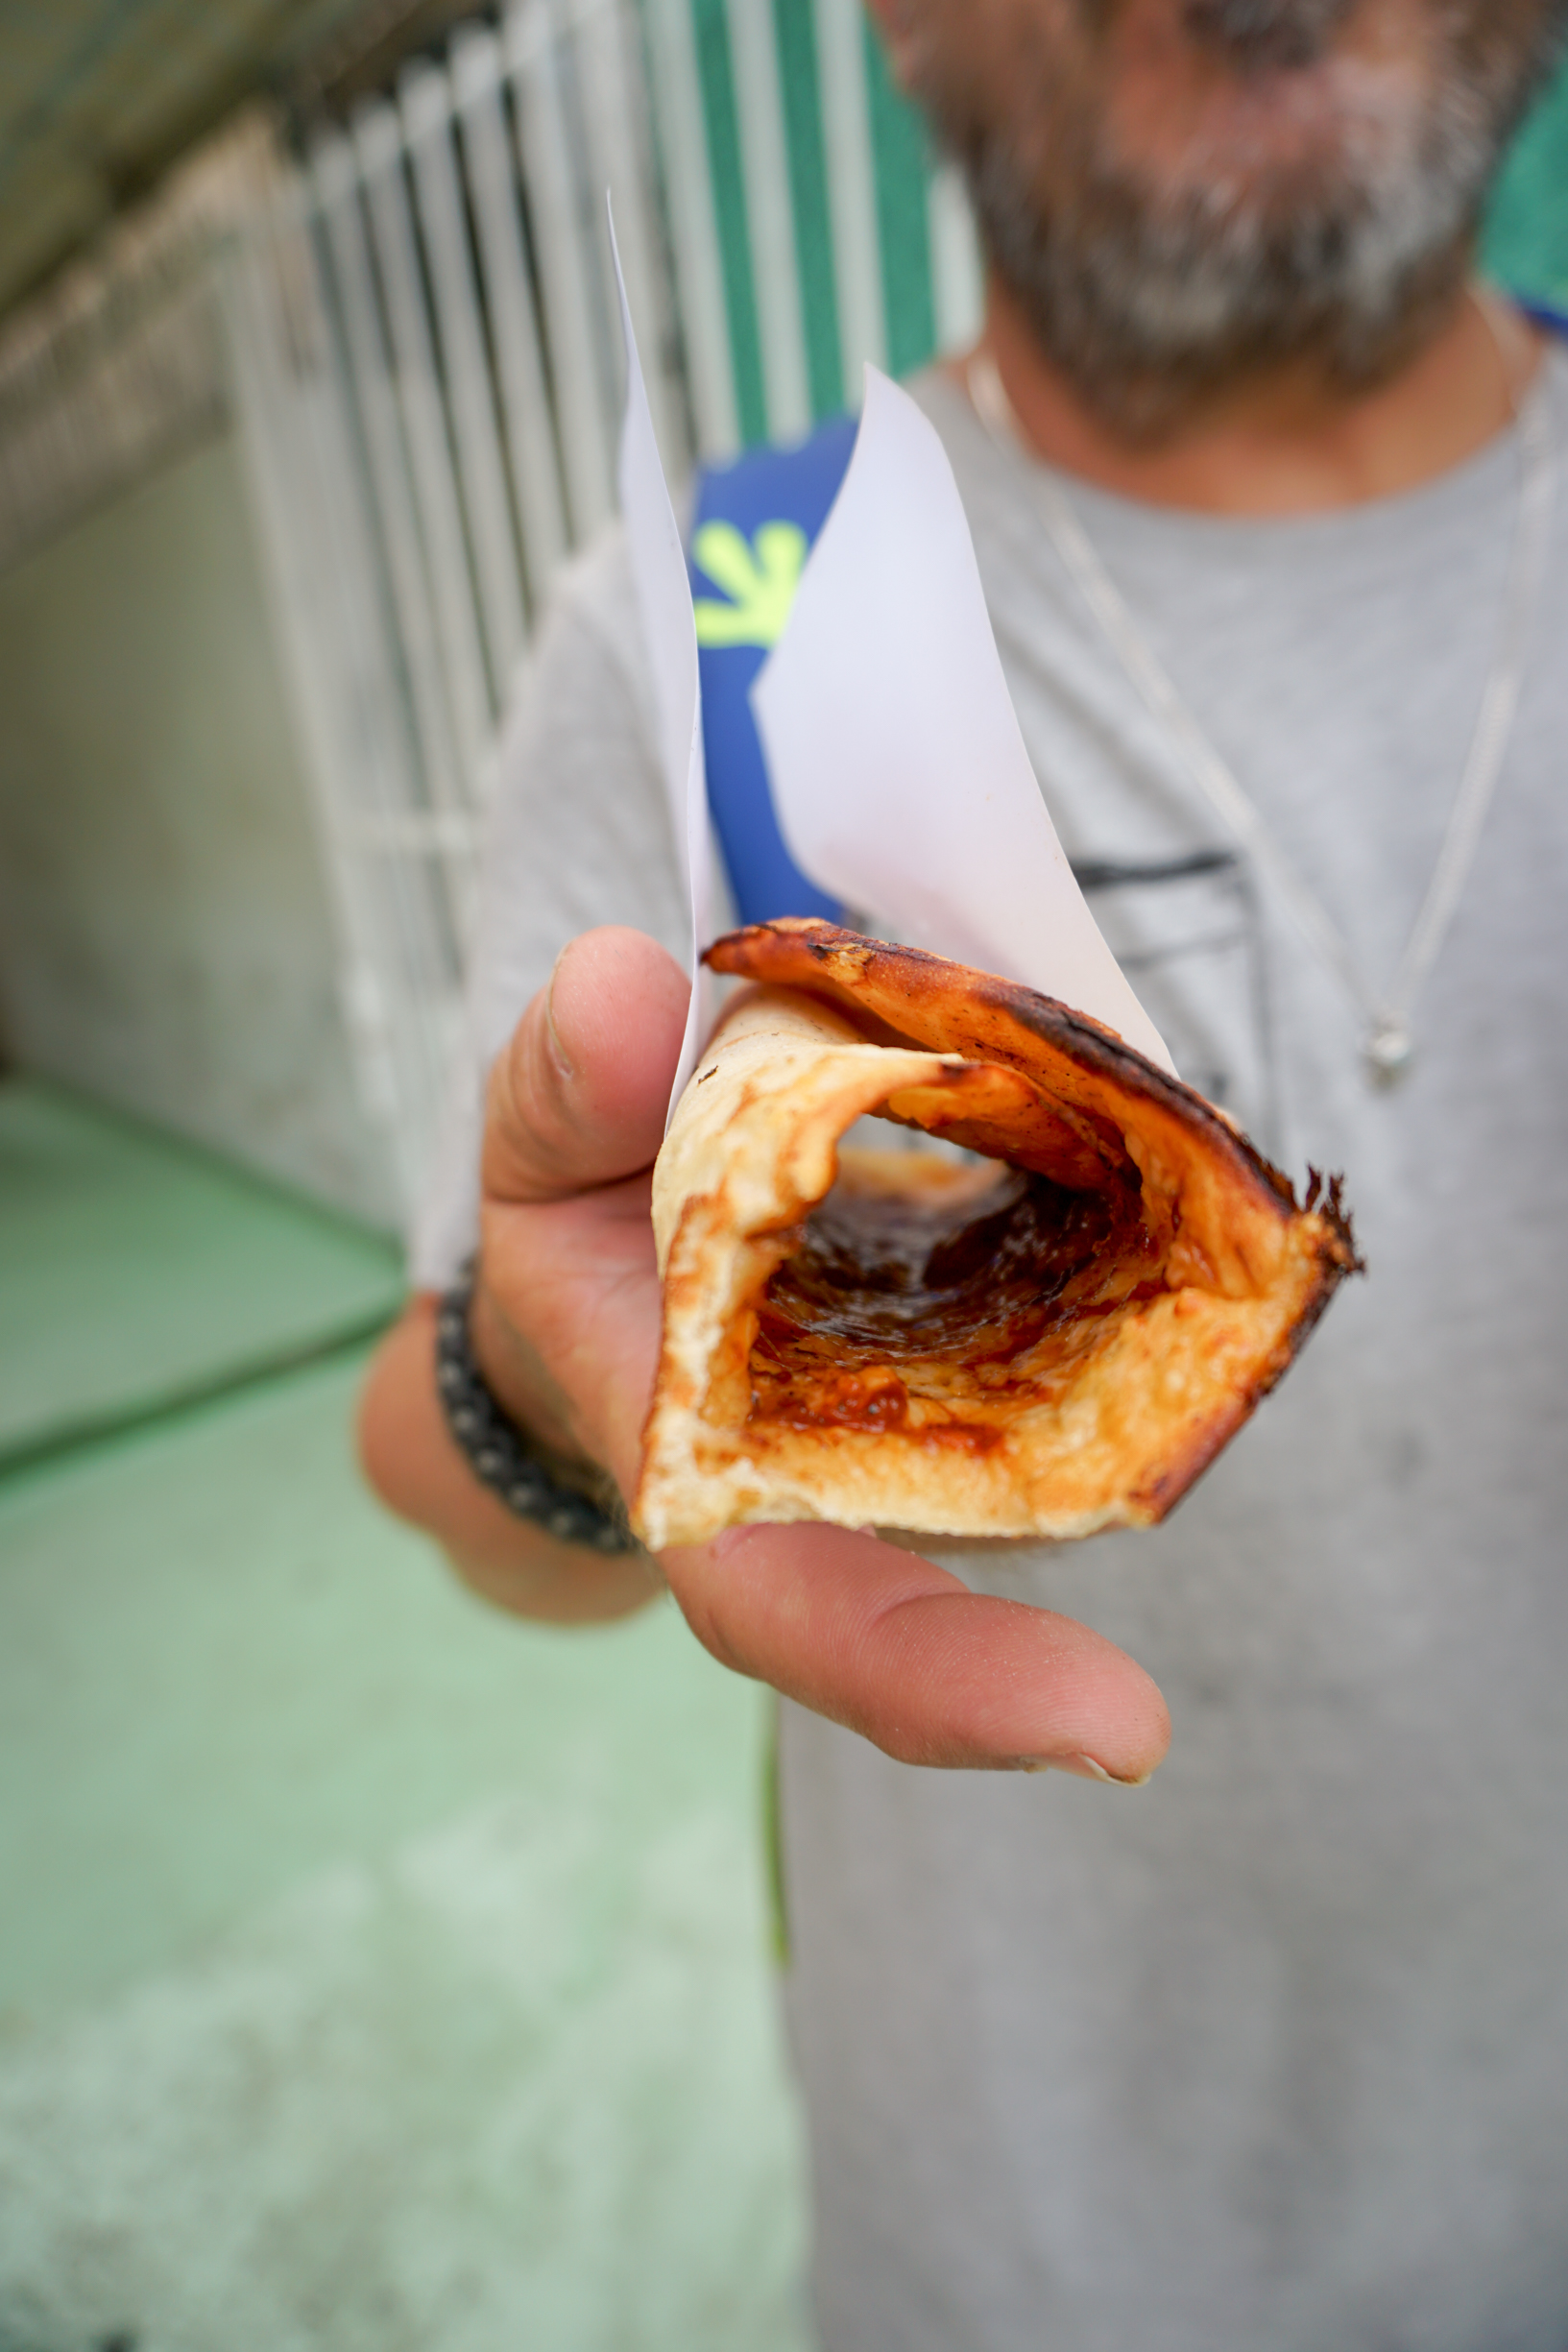 When you want to eat on the go in Cuba, your choices will almost always be either some variation of a ham and cheese sandwich, a hamburger, or pizza. This particular pizza Napolitano from Giselles Pizza near the National Hotel was not only incredibly hot and tasty, it was also the least expensive we found.